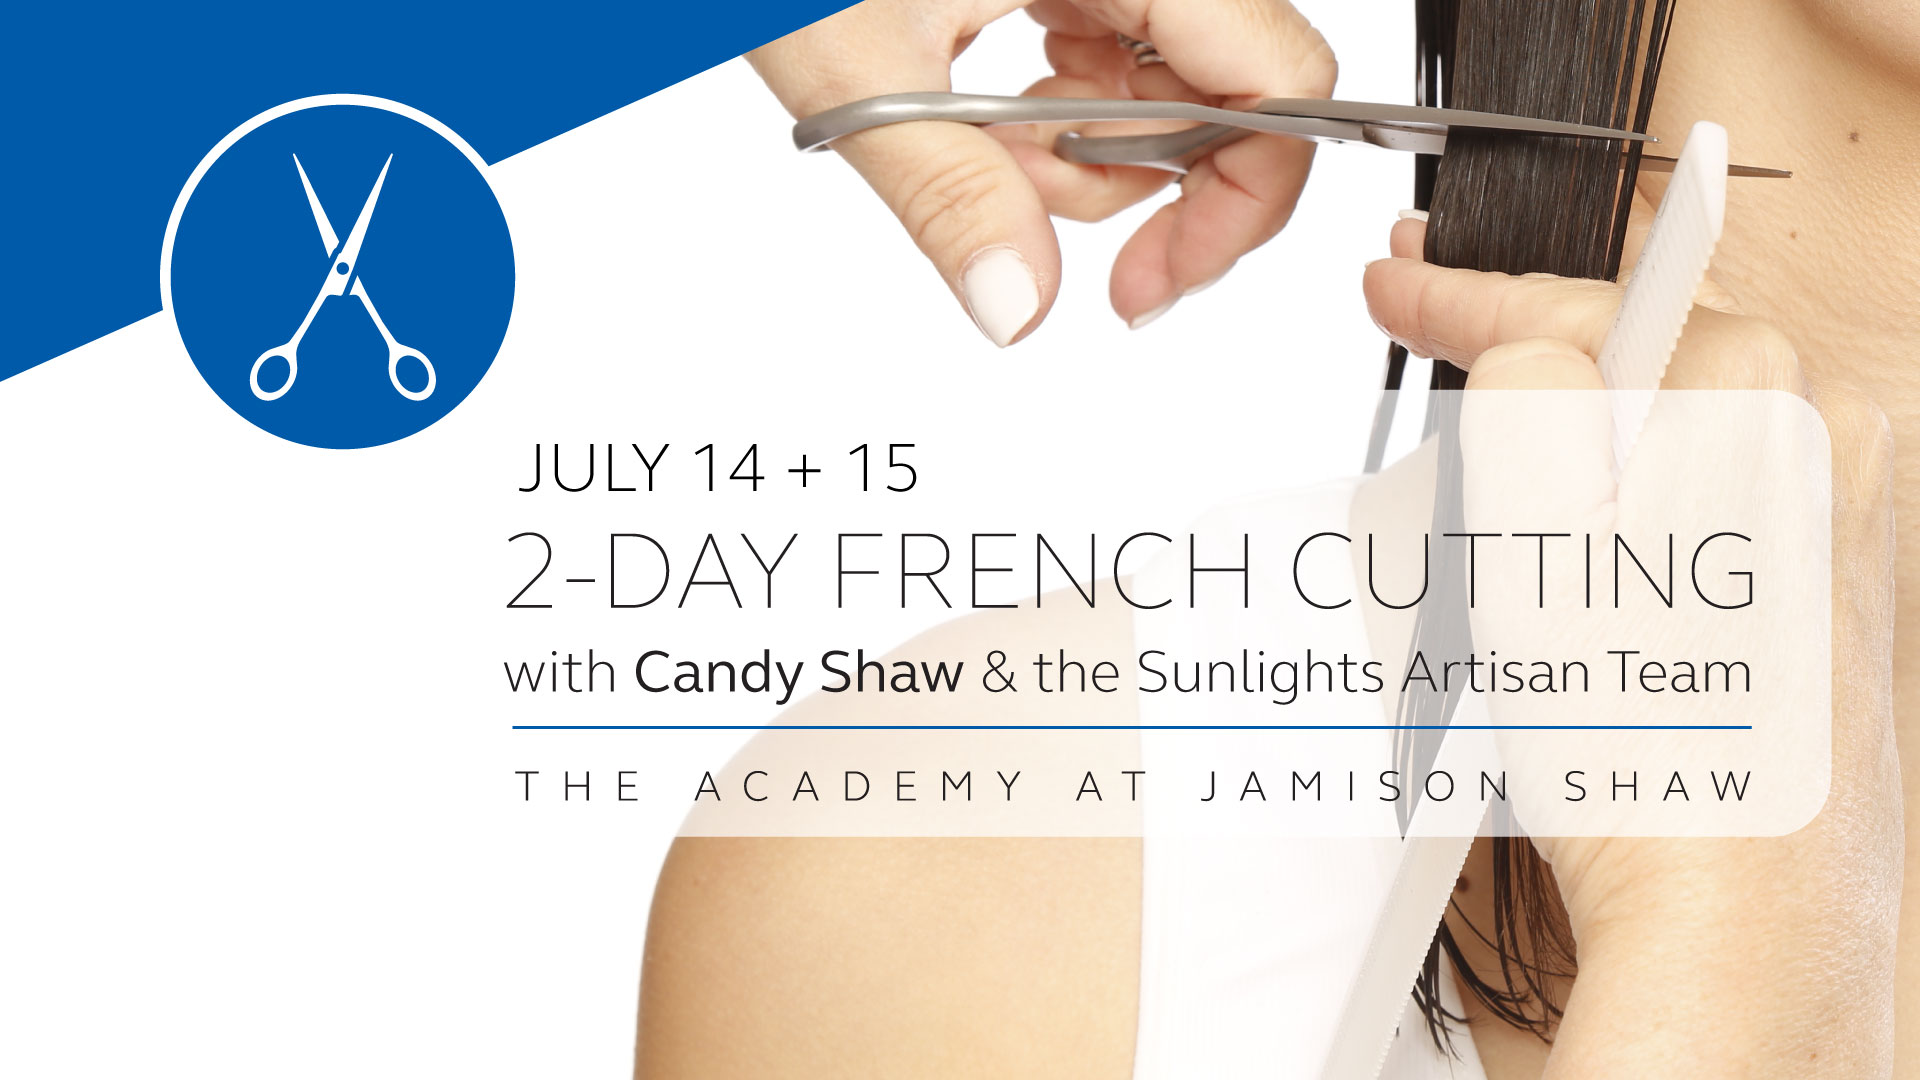 2-Day French Cutting Workshop with Candy Shaw!